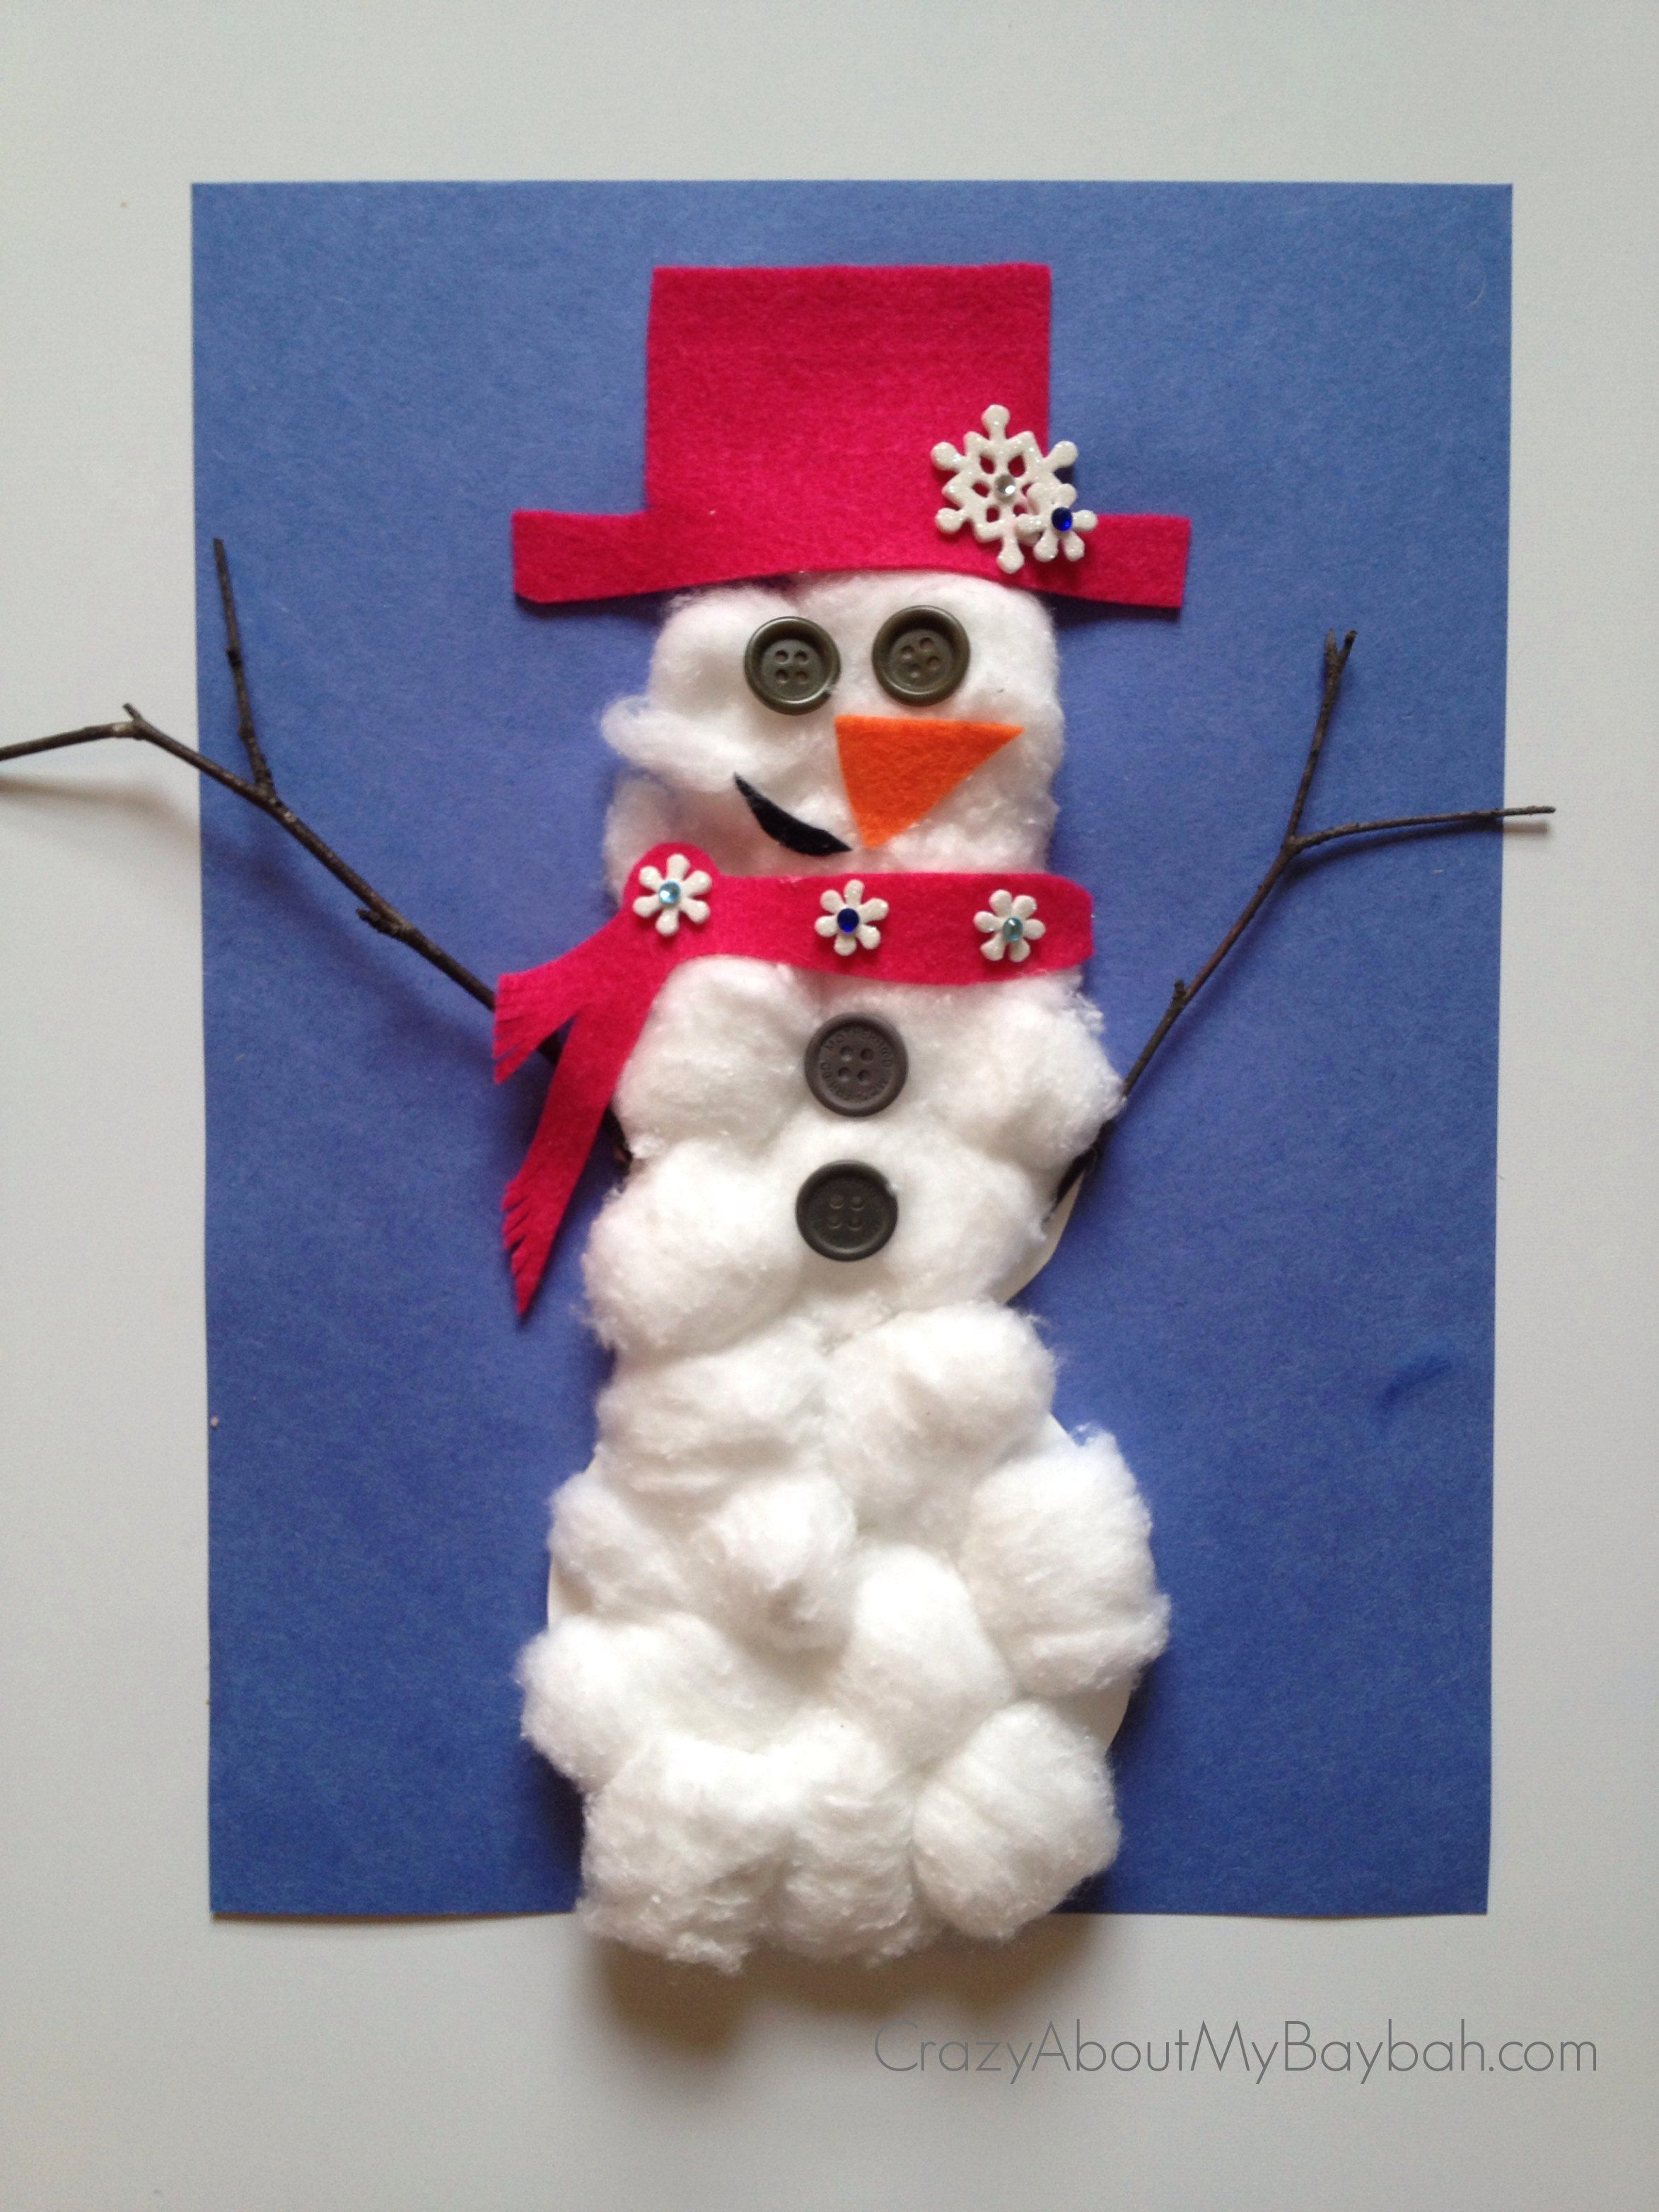 Christmas Crafts With Cotton Balls